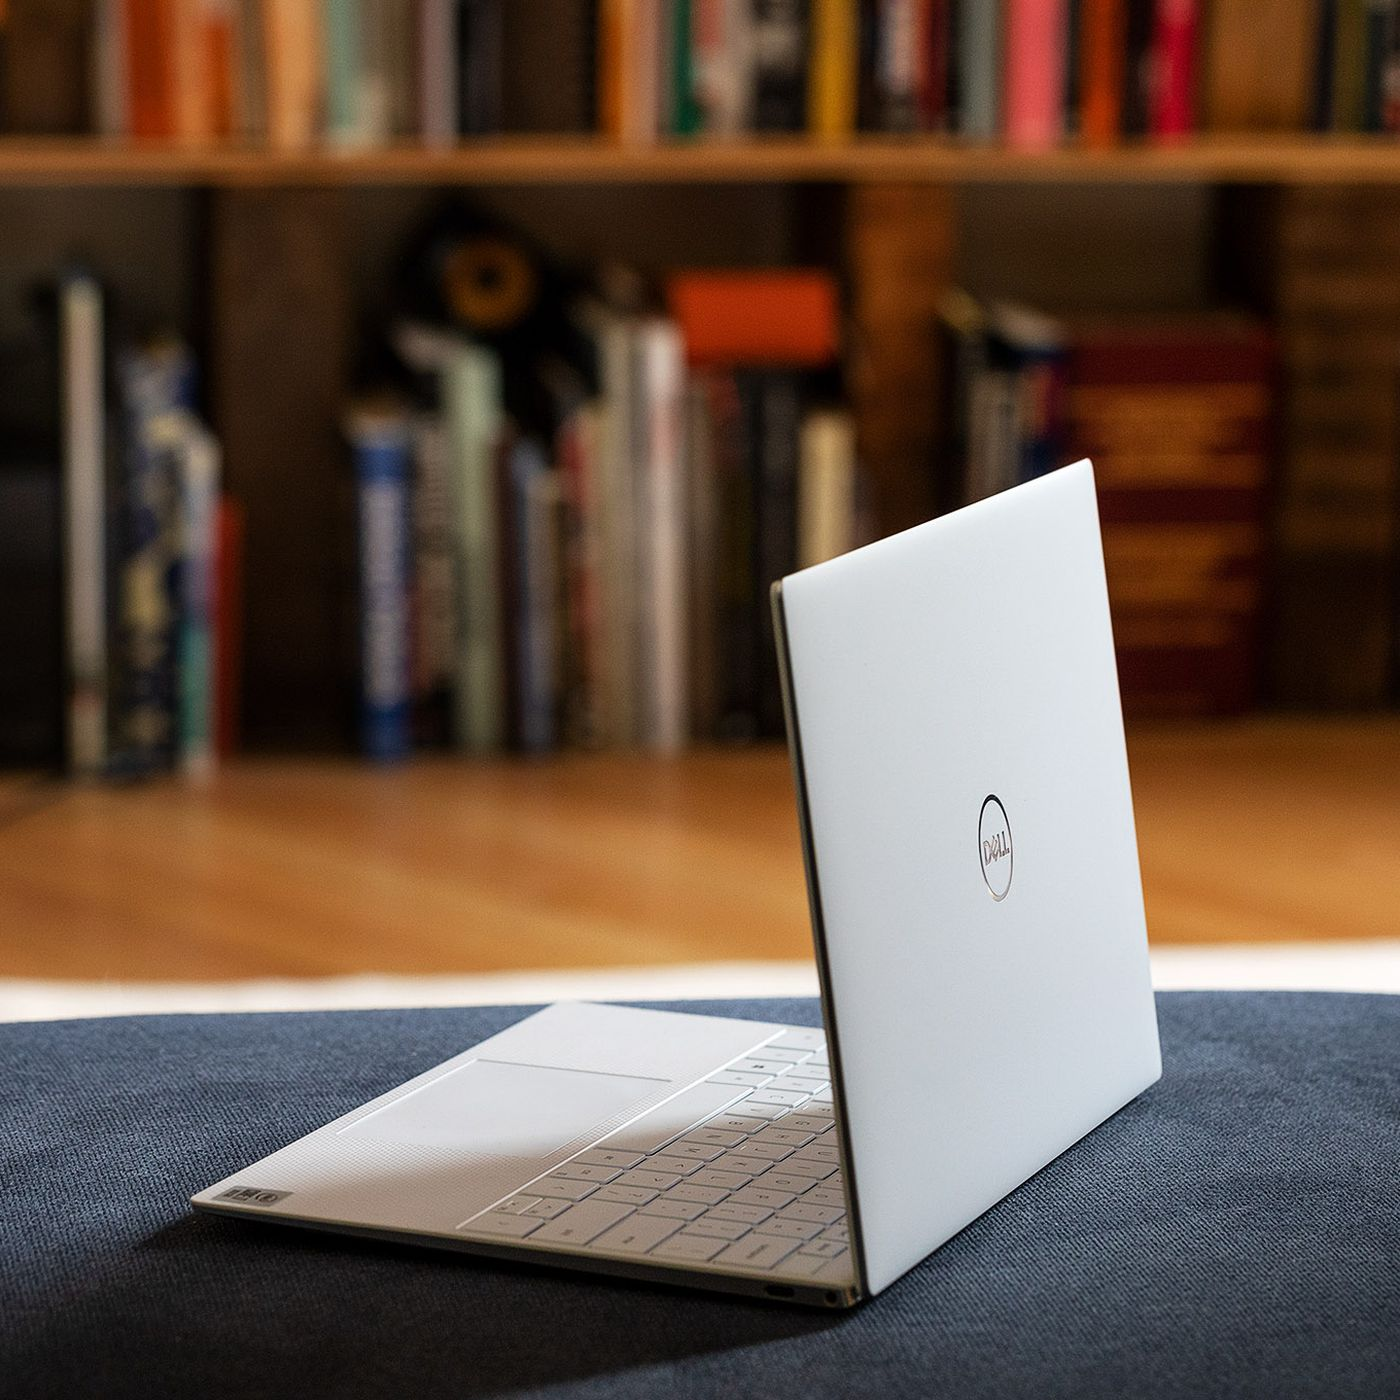 Best Laptops For Students 2020 The Verge